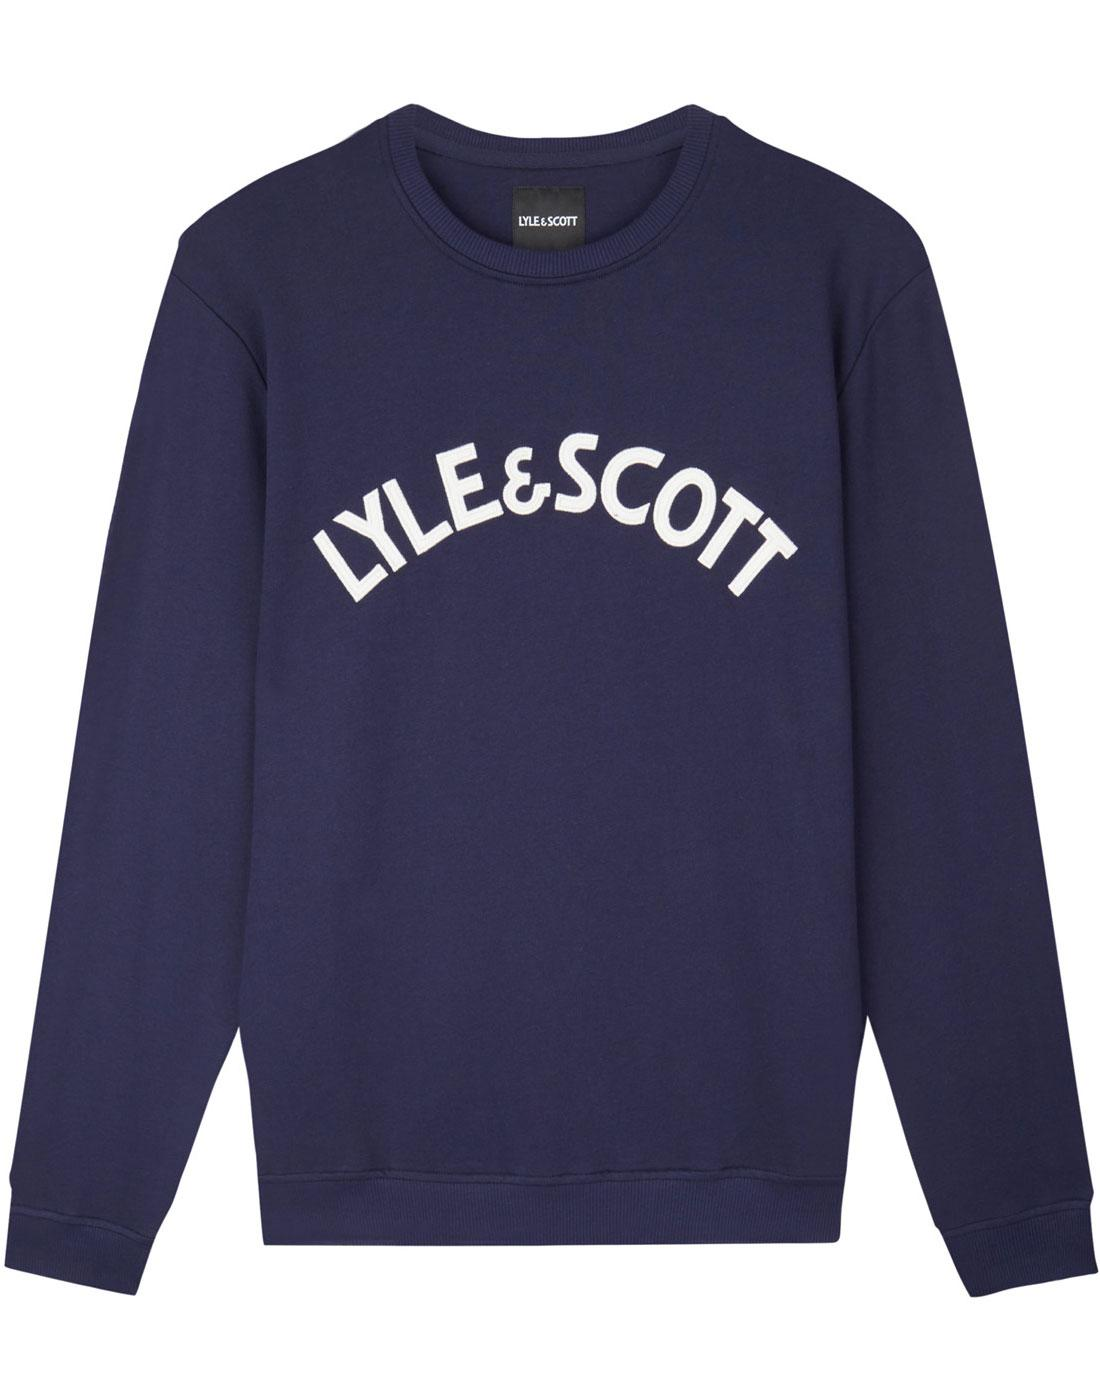 LYLE & SCOTT Men's Retro 70s Varsity Sweatshirt